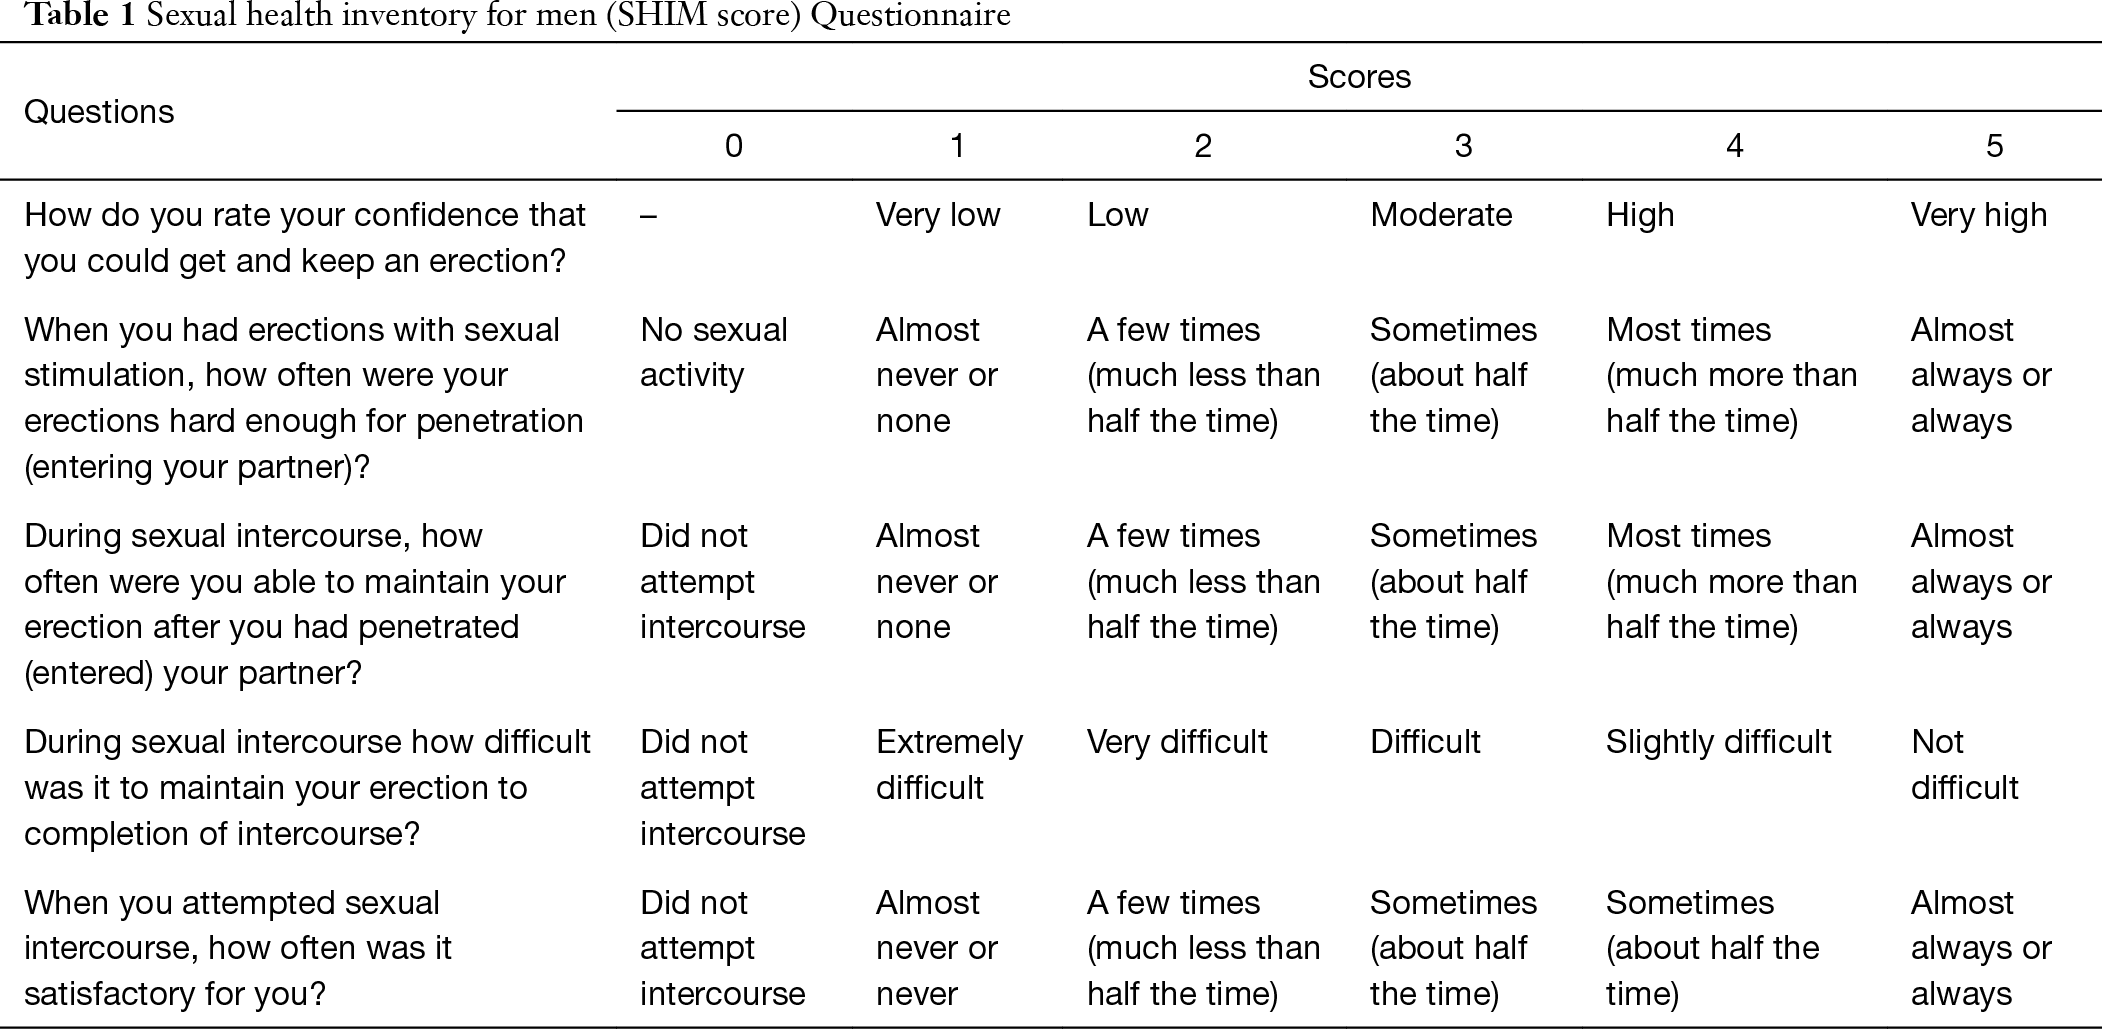 Sexual health inventory for men questionnaire